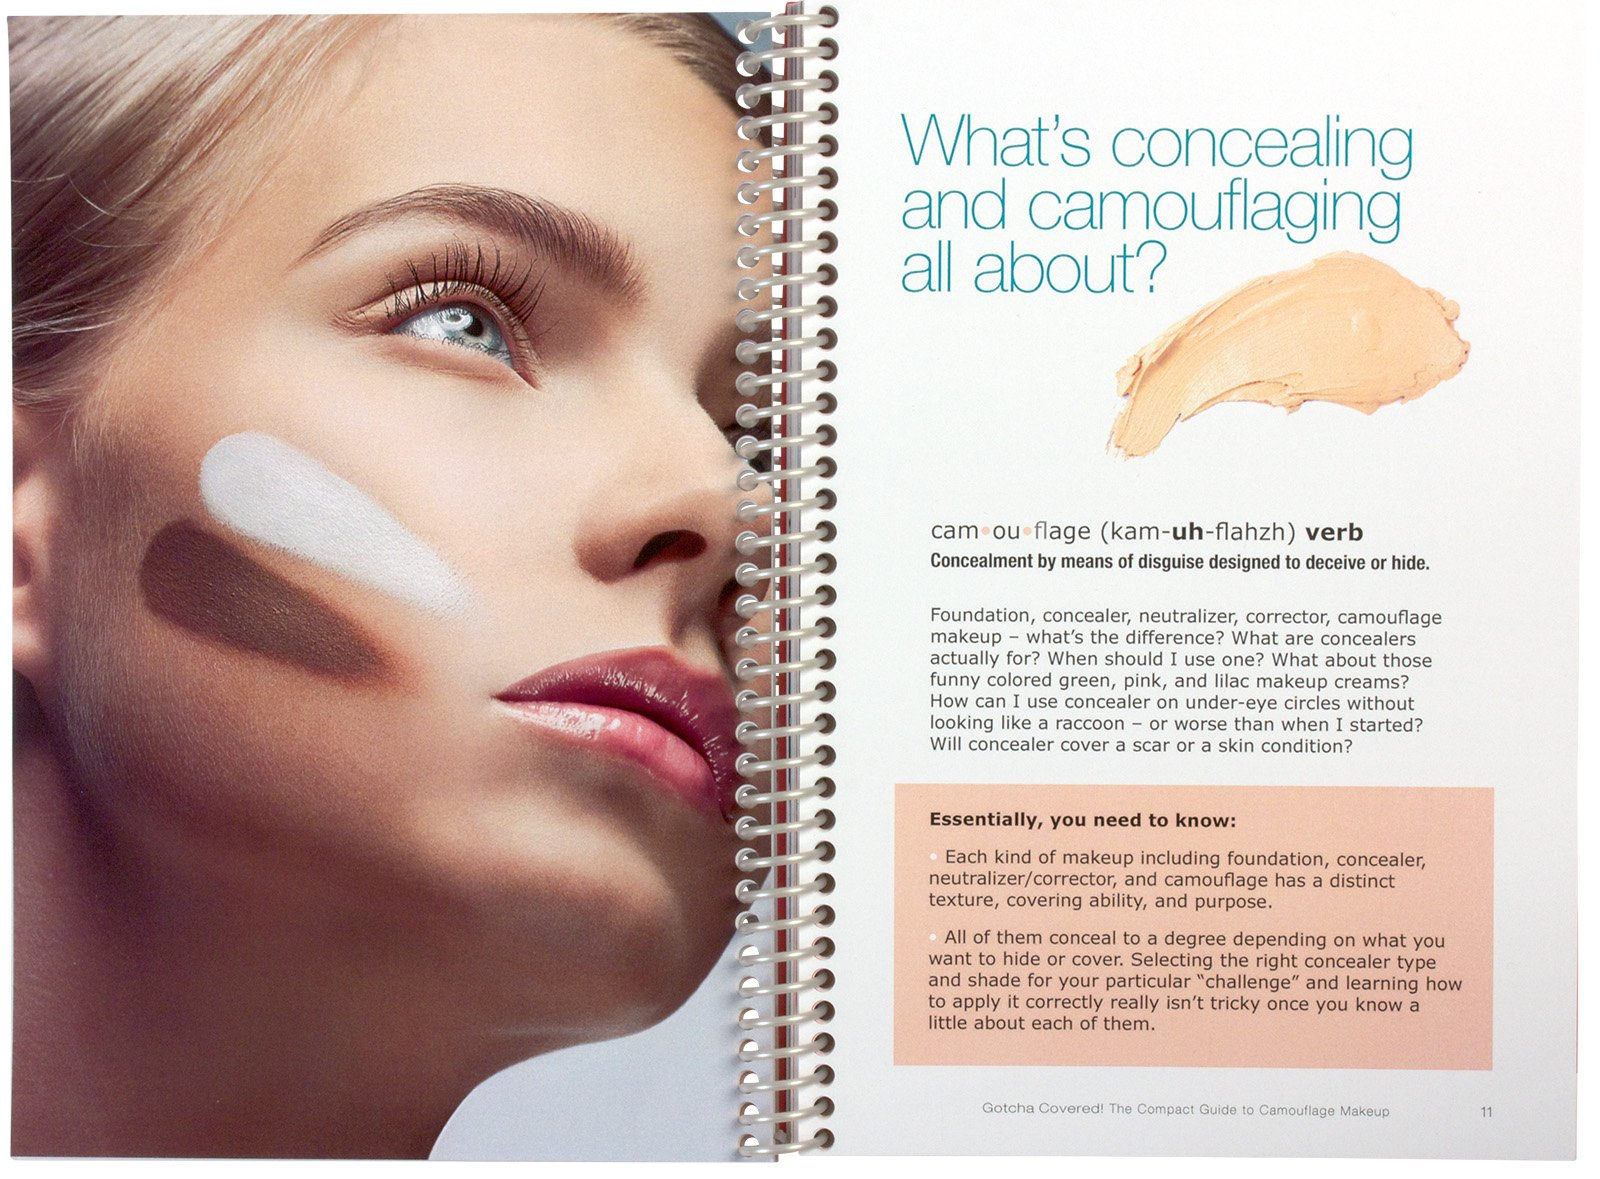 GOTCHA Covered - The Compact Guide to Camouflage Makeup: Judith ...